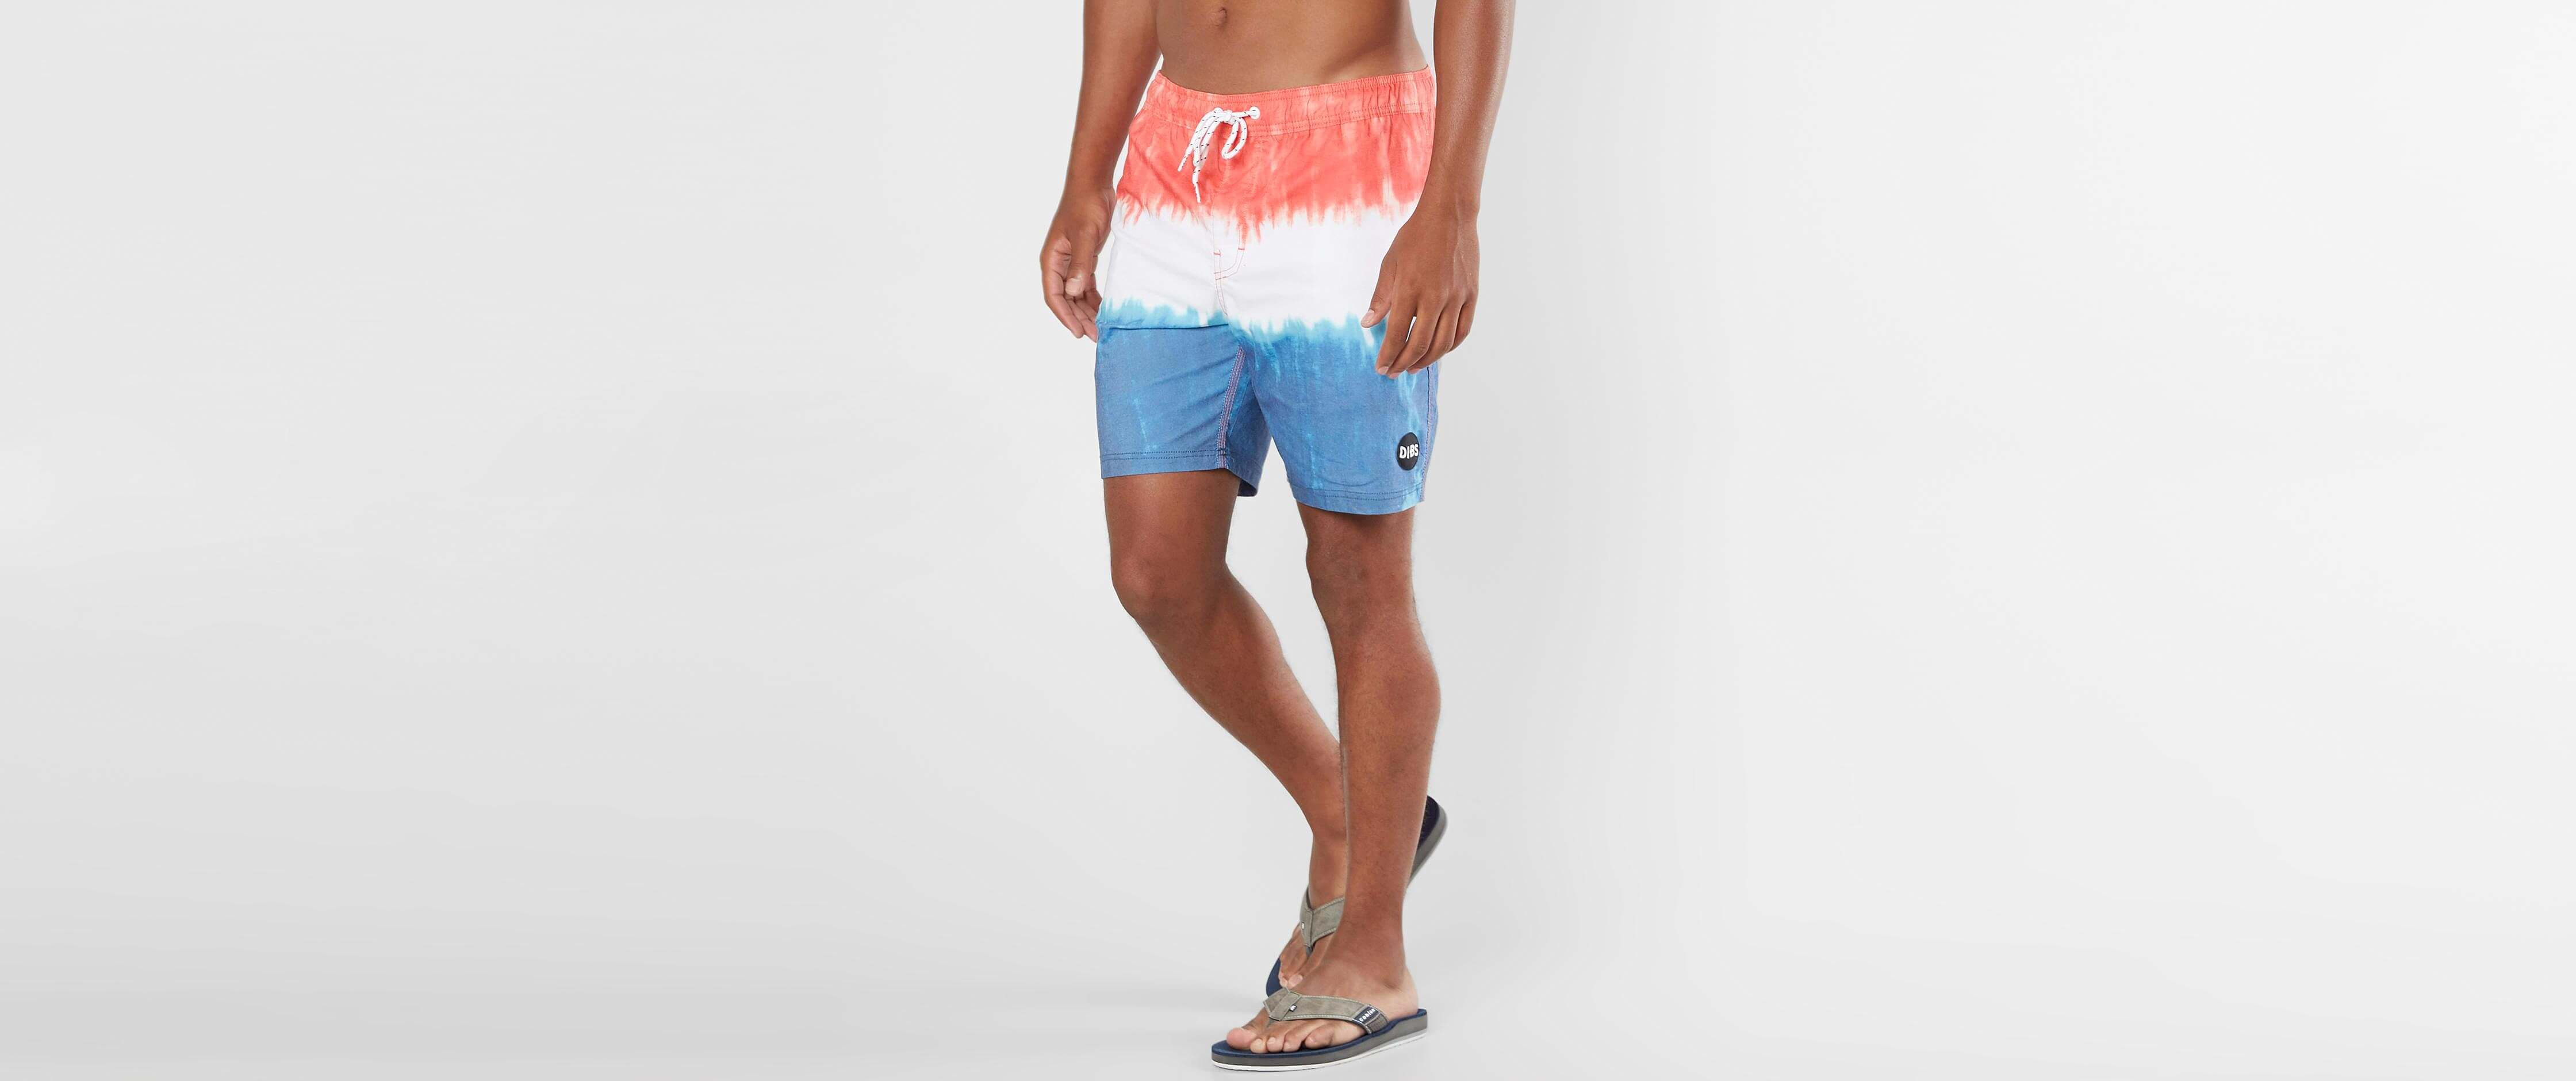 Board shorts for men   exclusively